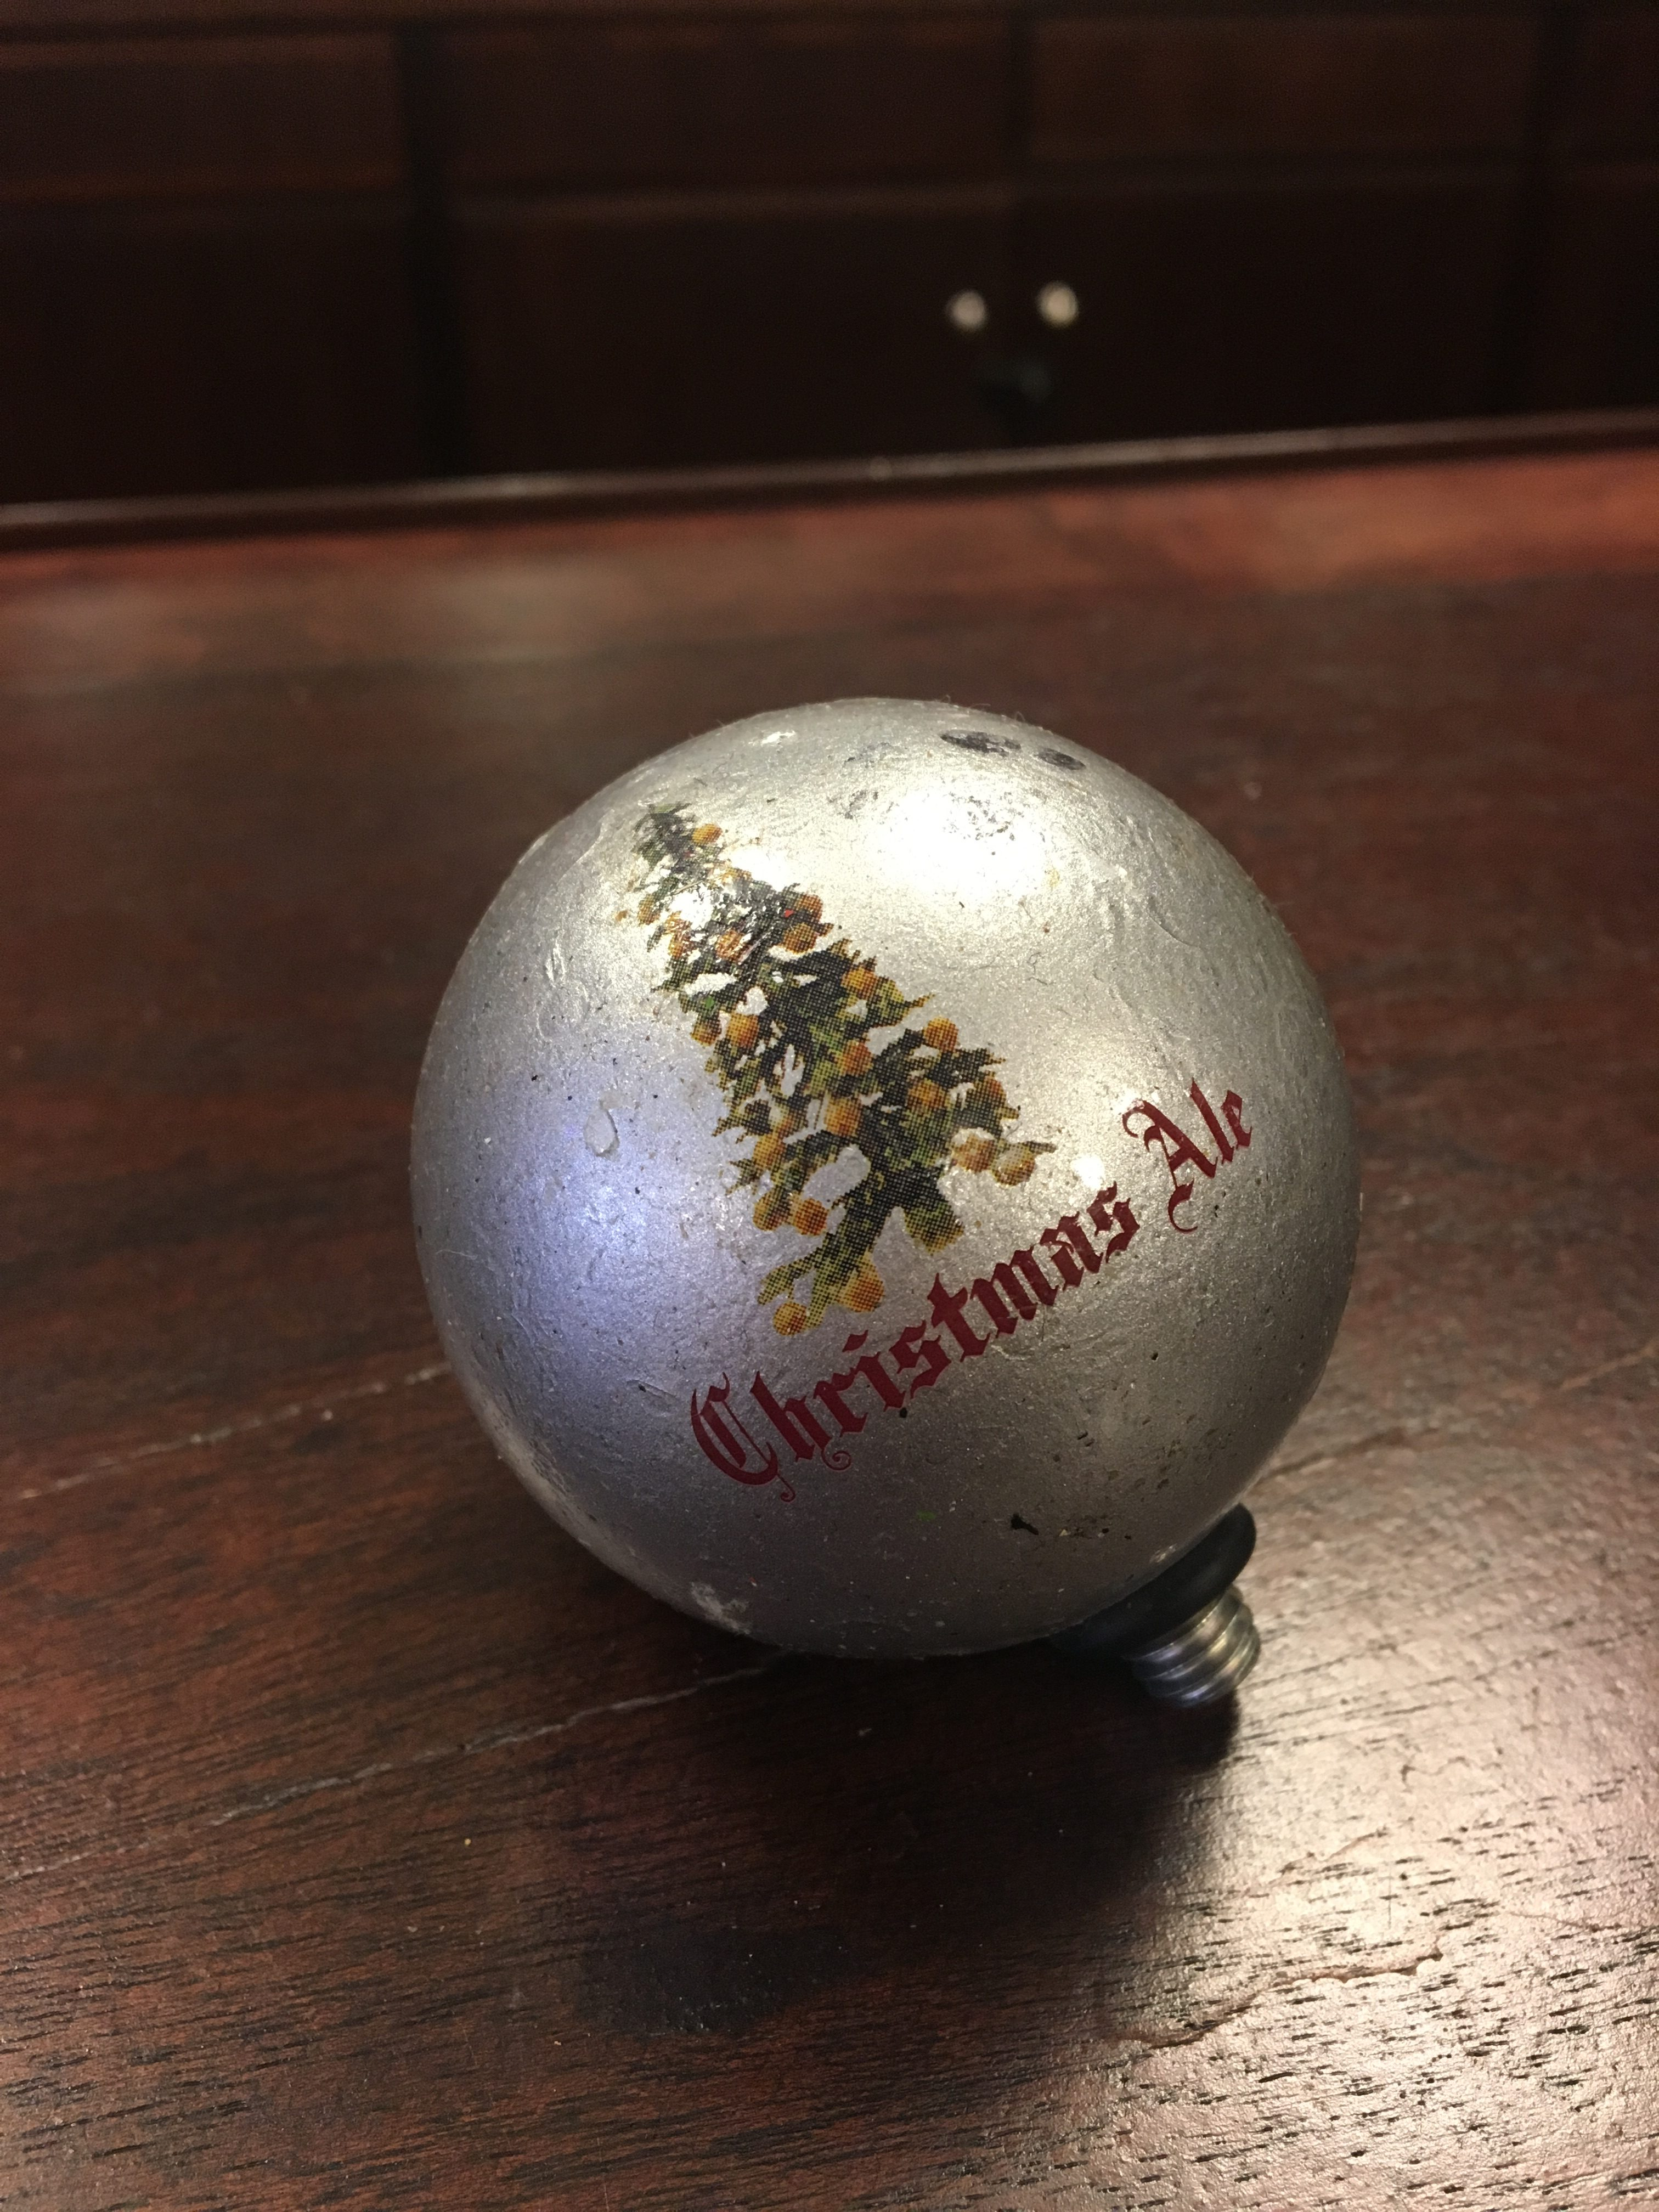 Photo Of Bell's Brewery Christmas Ale Tap Handle Topper